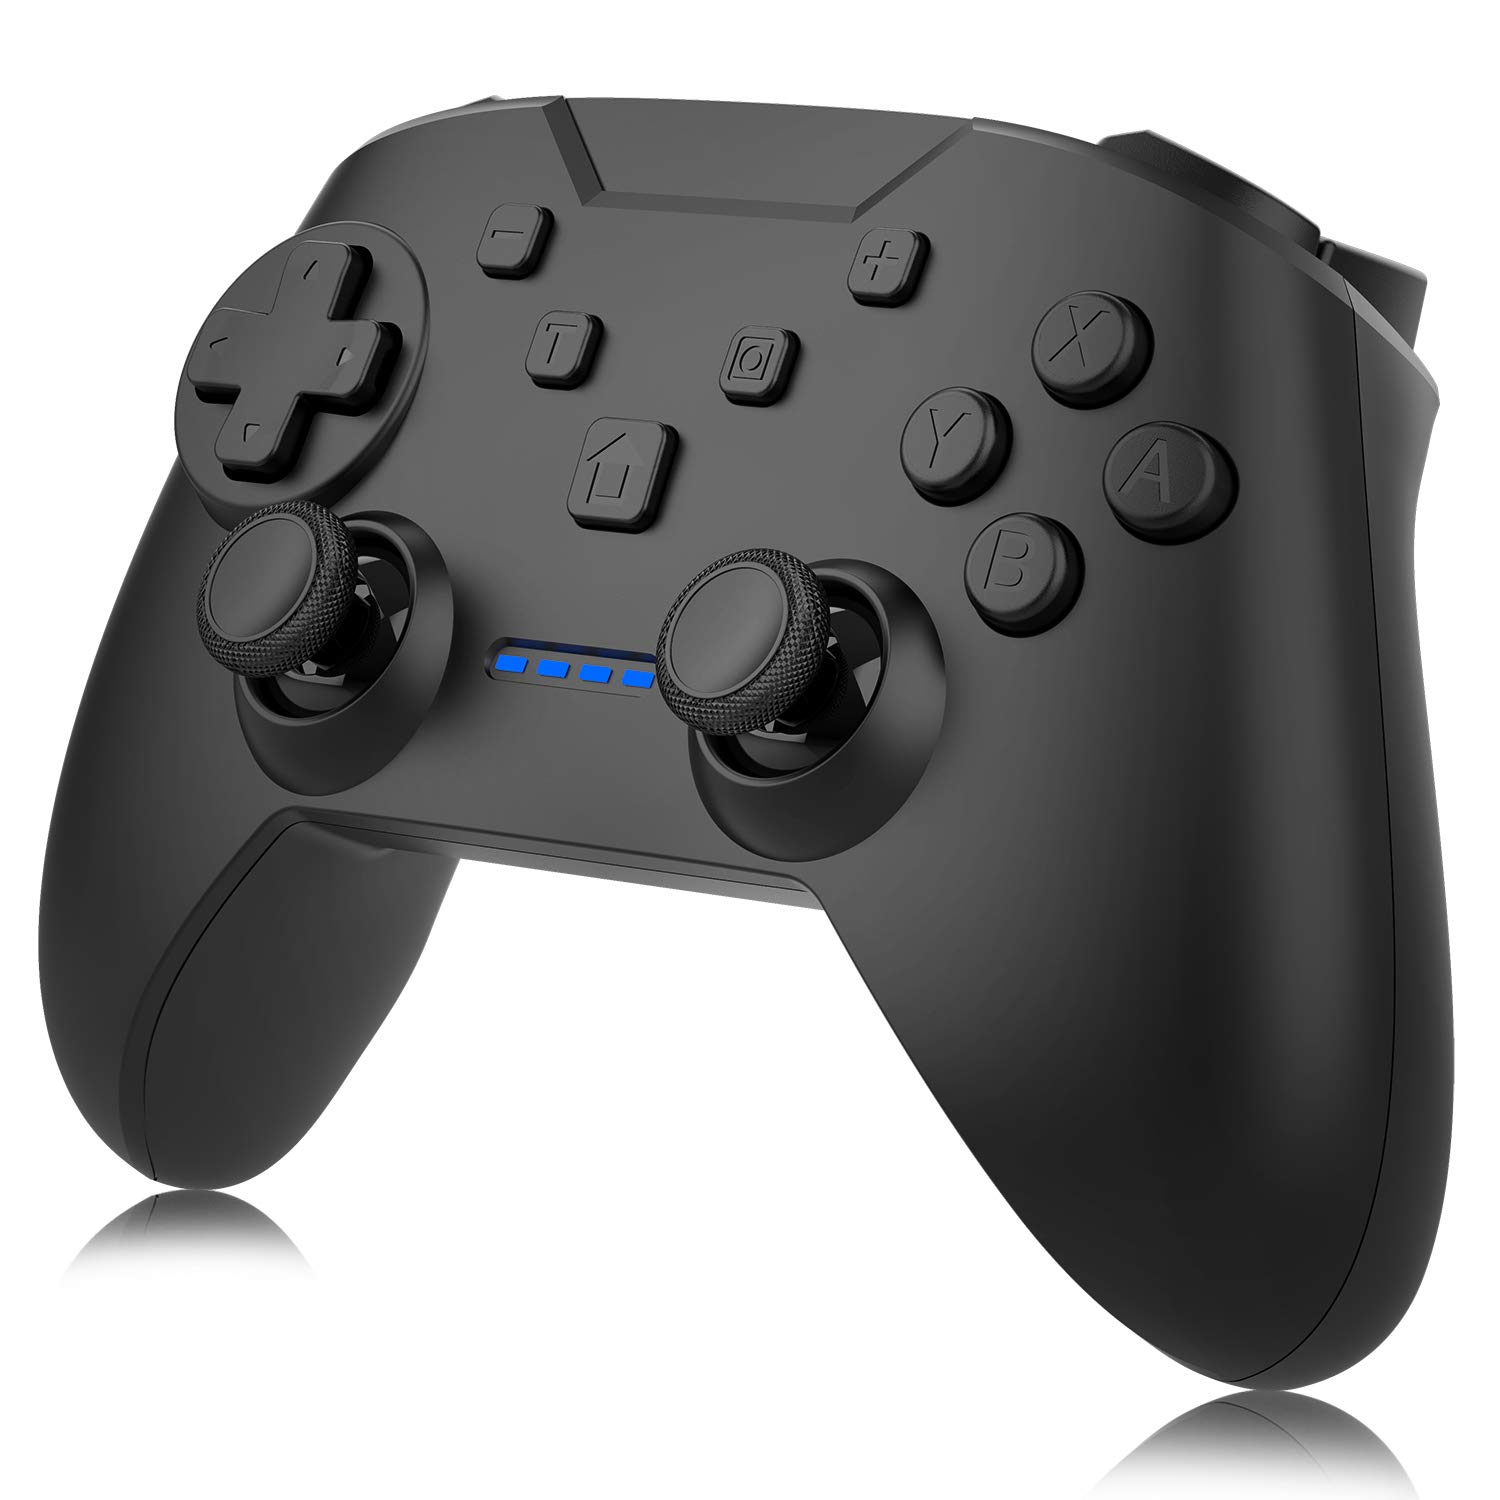 N-intendo Switch Pro Controller - Wireless Controller Remote with Dual Shock, Gyro Axis, Pro Switch Controller Gamepad Compatible with Bluetooth for N-intendo Switch Console (Black)